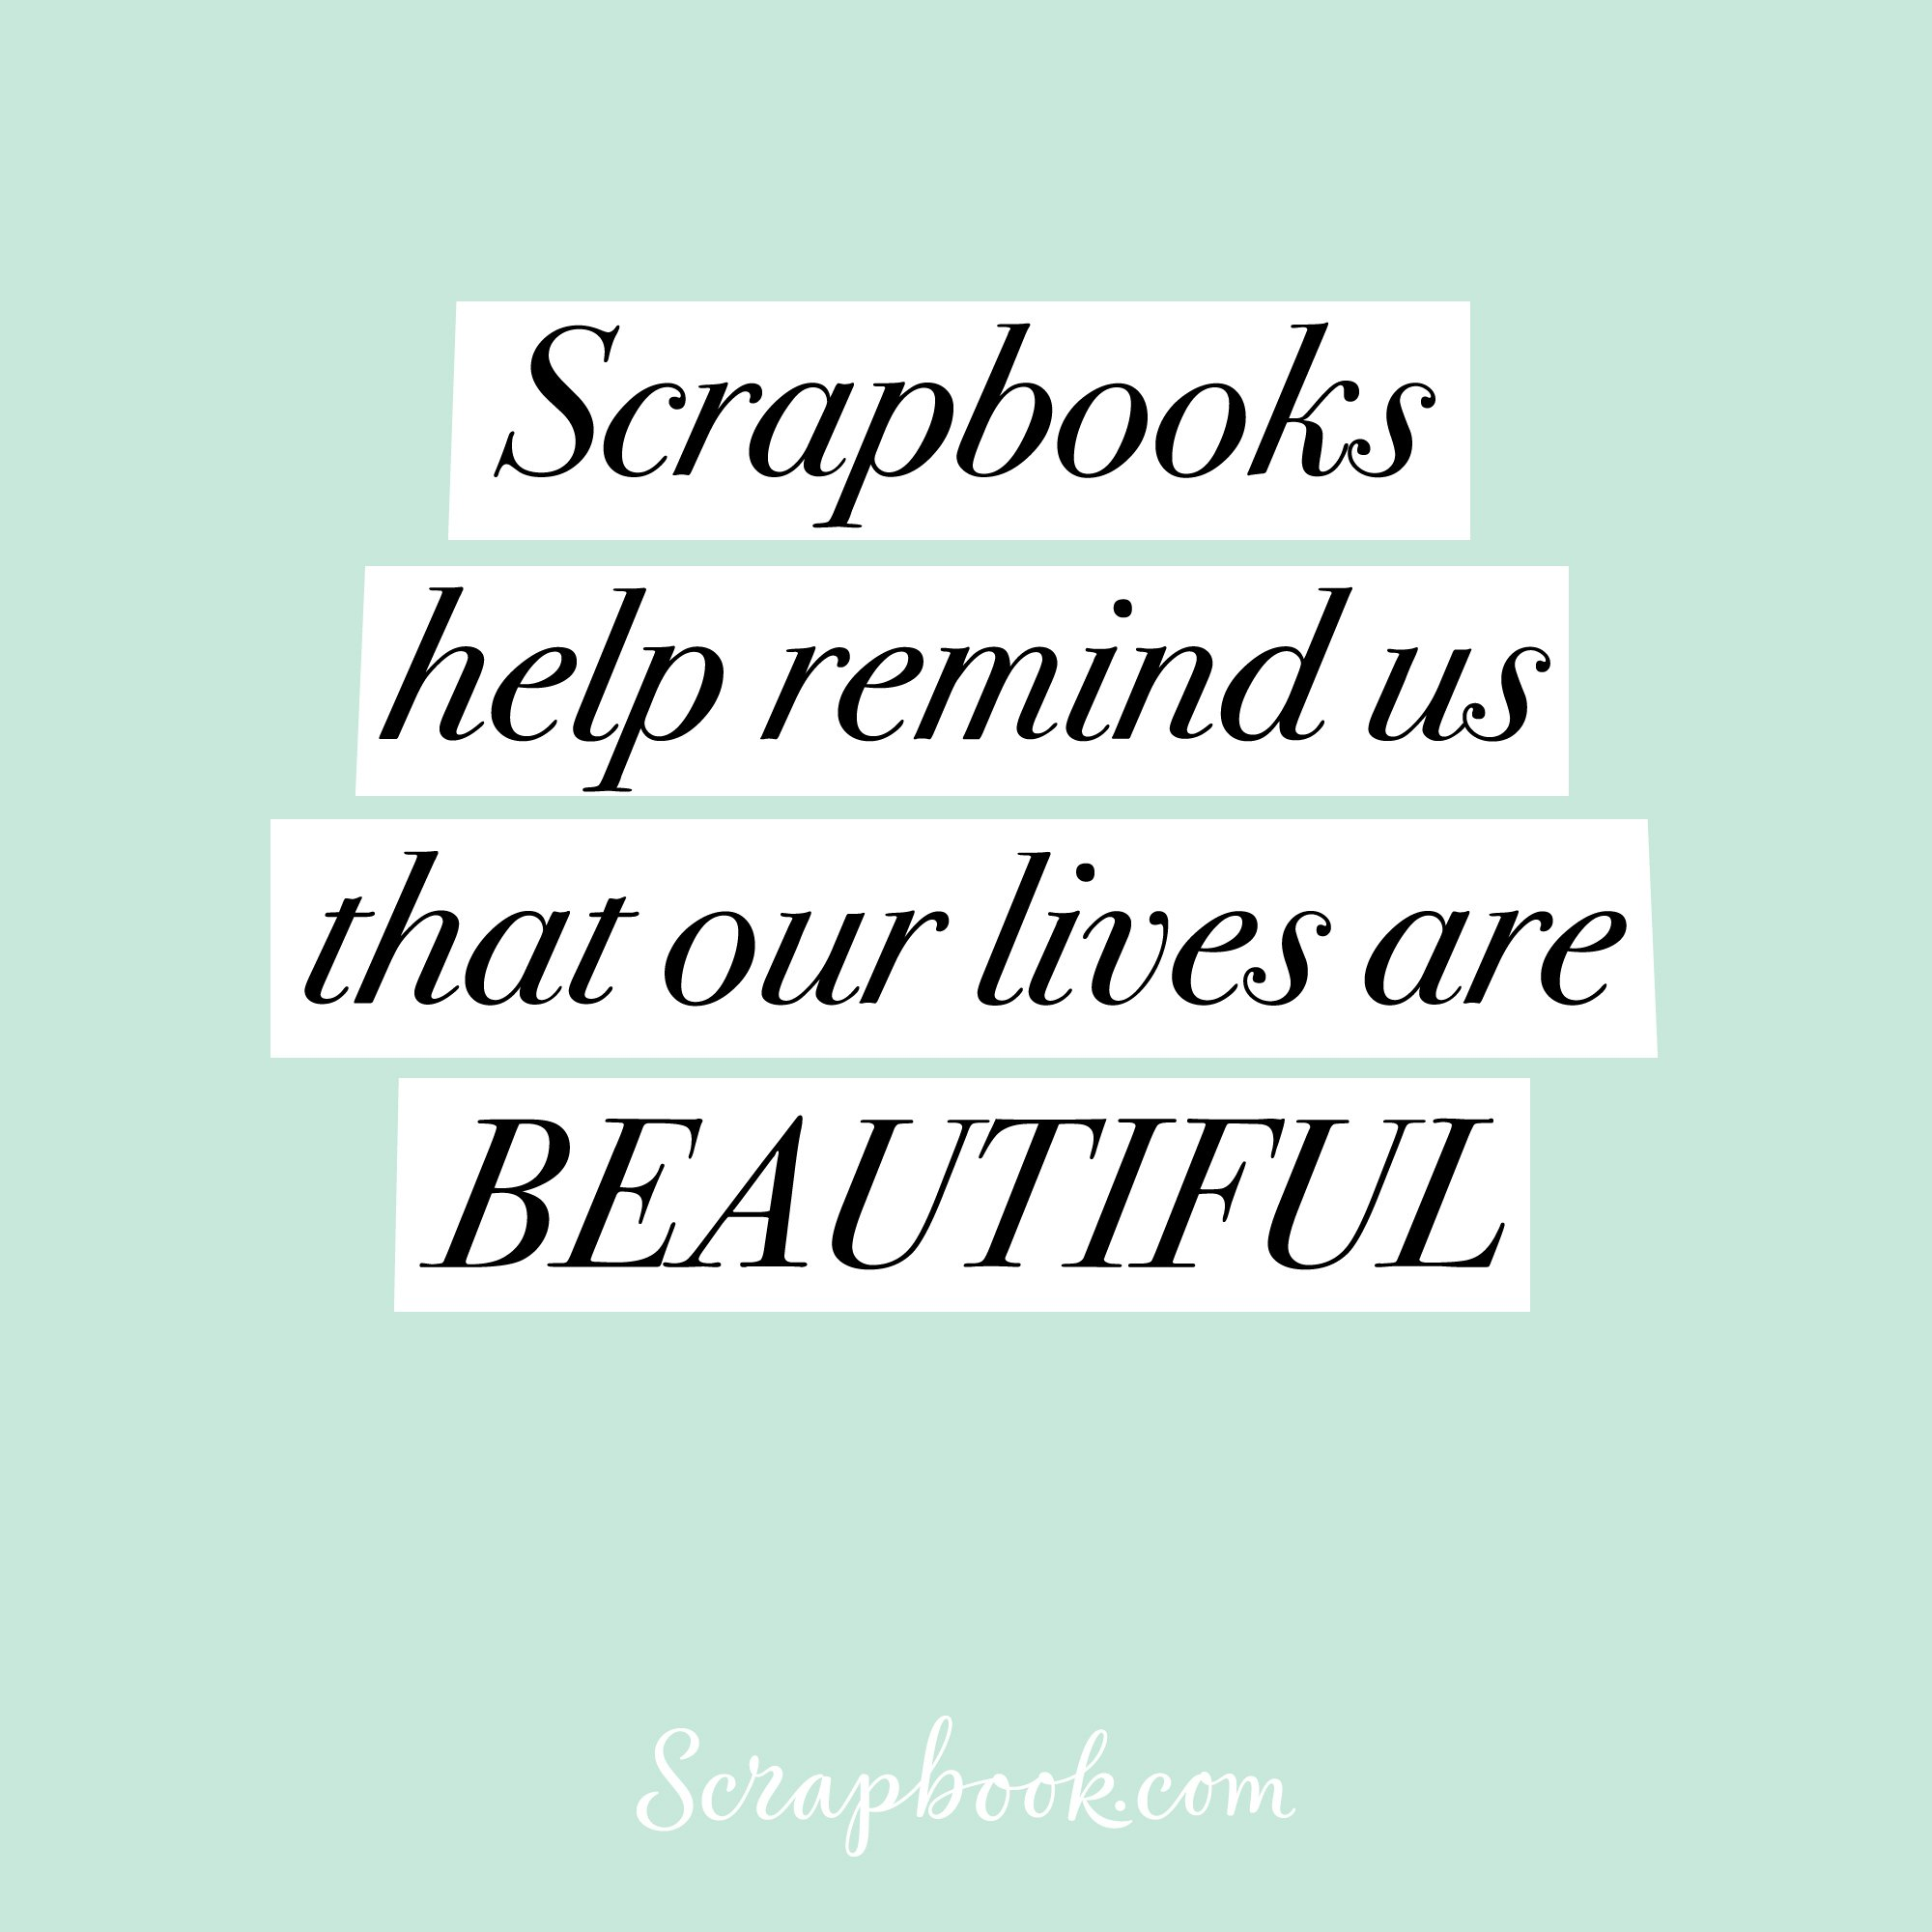 Scrapbooks help remind us that our lives are BEAUTIFUL